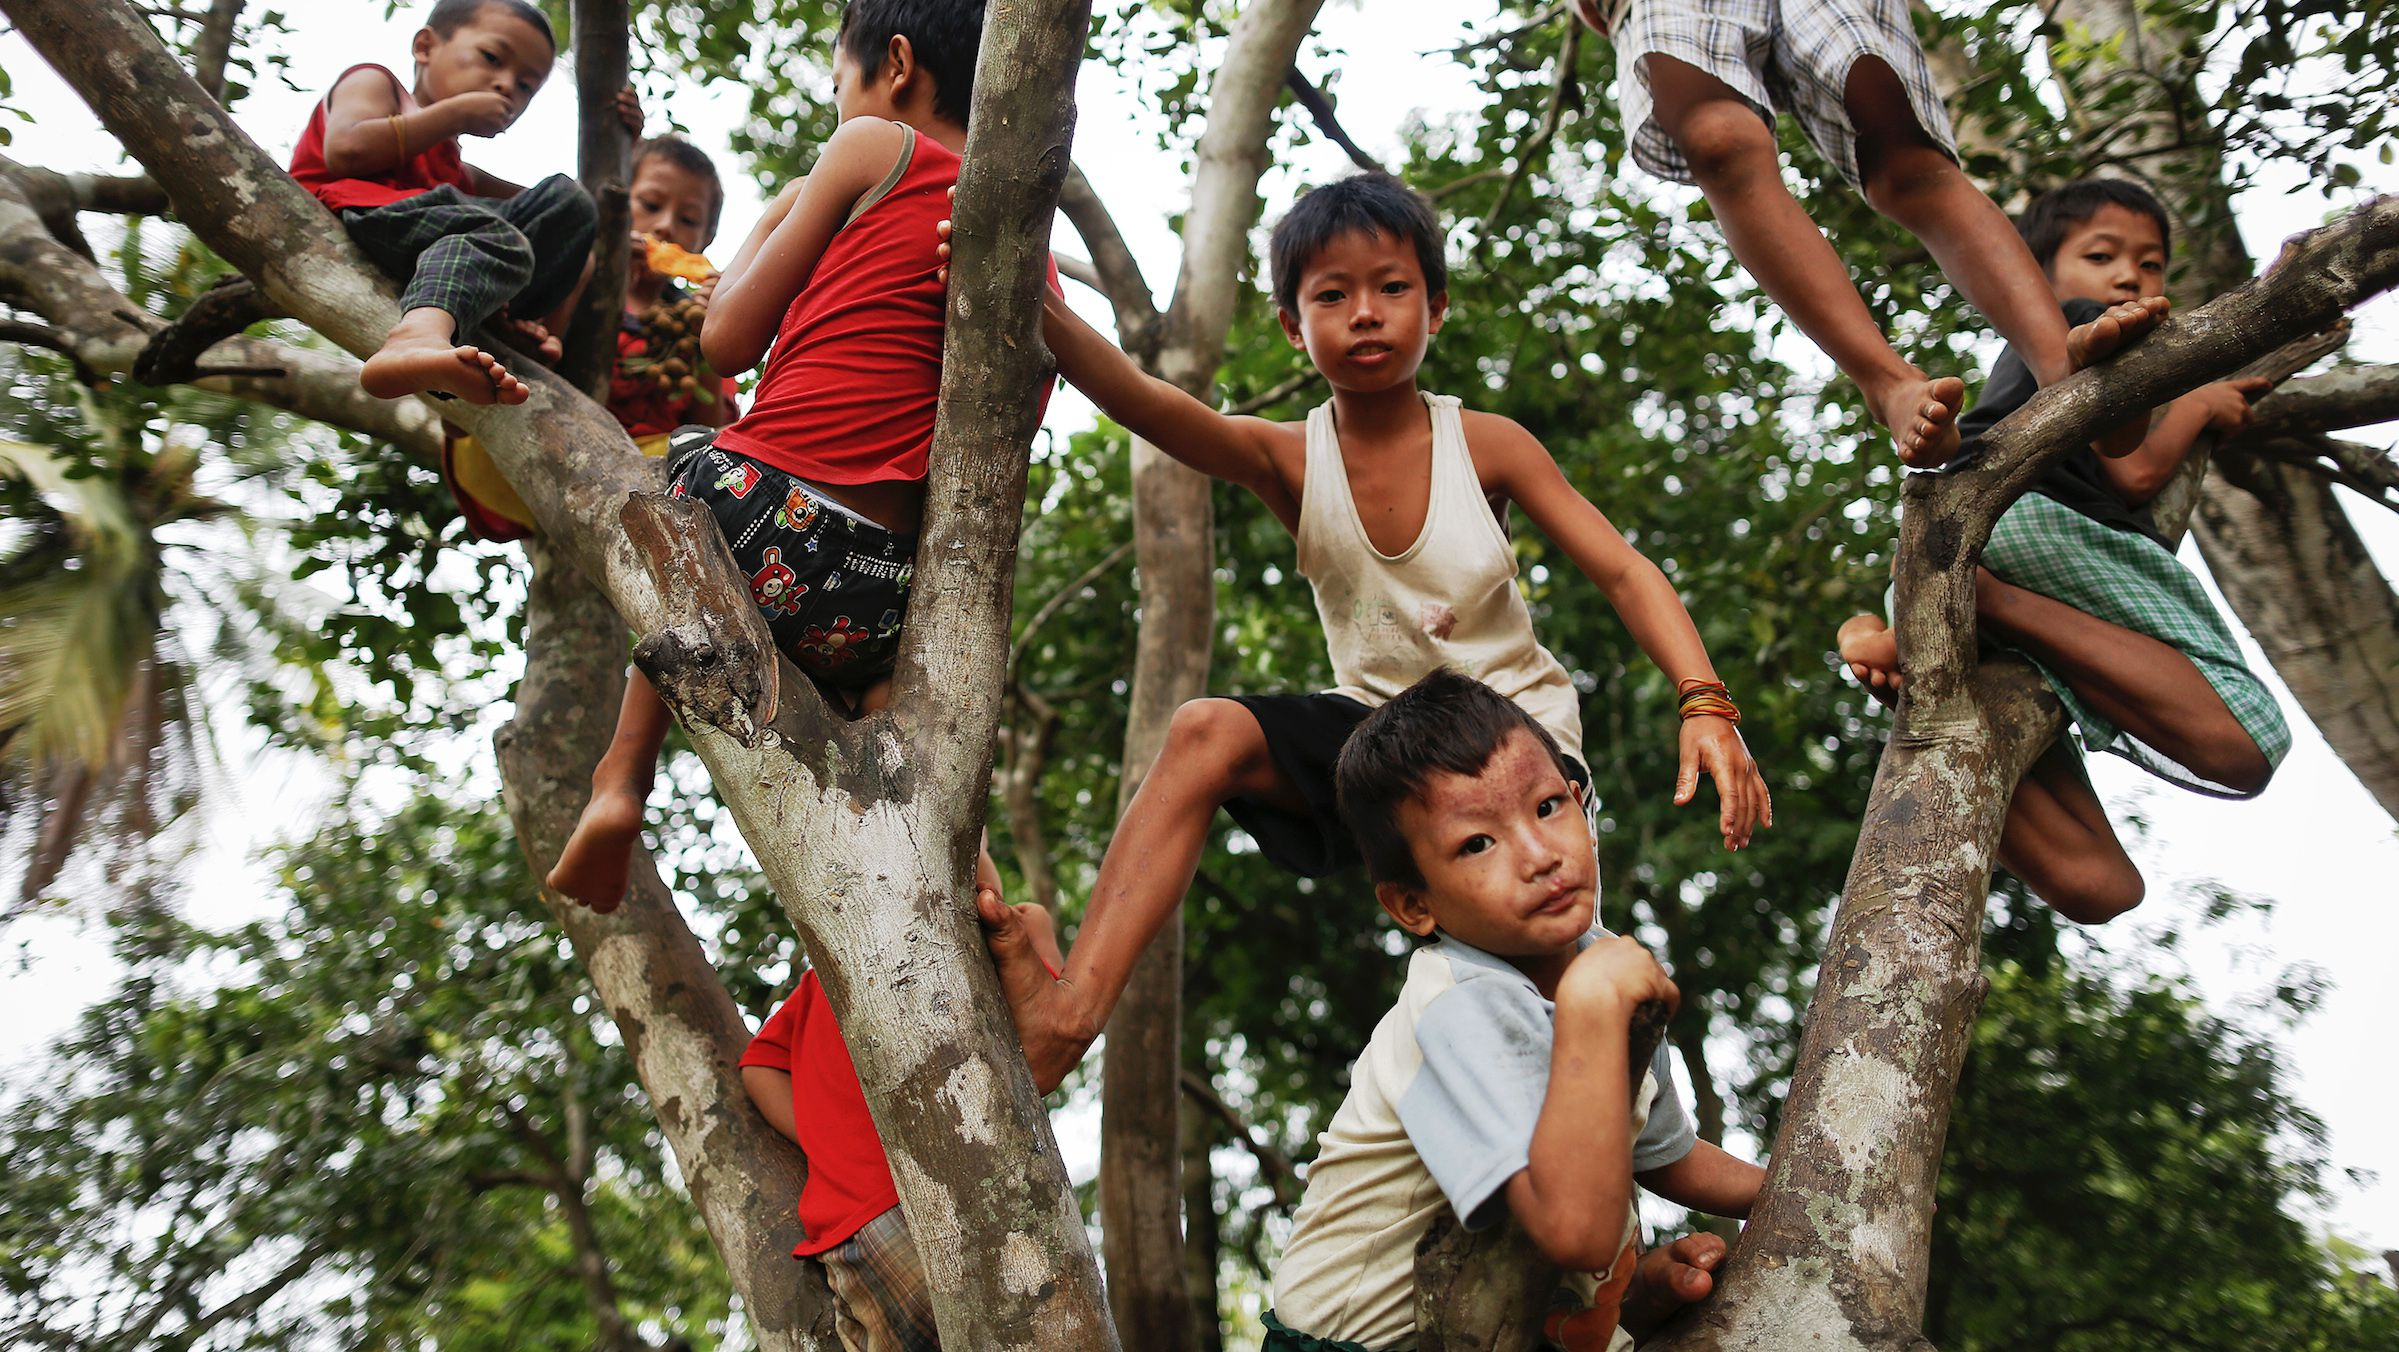 Children climb a tree at a camp for internally displaced persons in the suburbs of Myitkyina, the capital of Kachin State July 7, 2013. Thousands fled when fighting erupted between Myanmar government troops and the Kachin Independence Army (KIA) after a ceasefire collapsed in June 2011. There are now at least 85,000 internally displaced persons in Kachin and neighboring Shan State, says the United Nations. REUTERS/Damir Sagolj (MYANMAR - Tags: SOCIETY CIVIL UNREST) - RTX11FLK